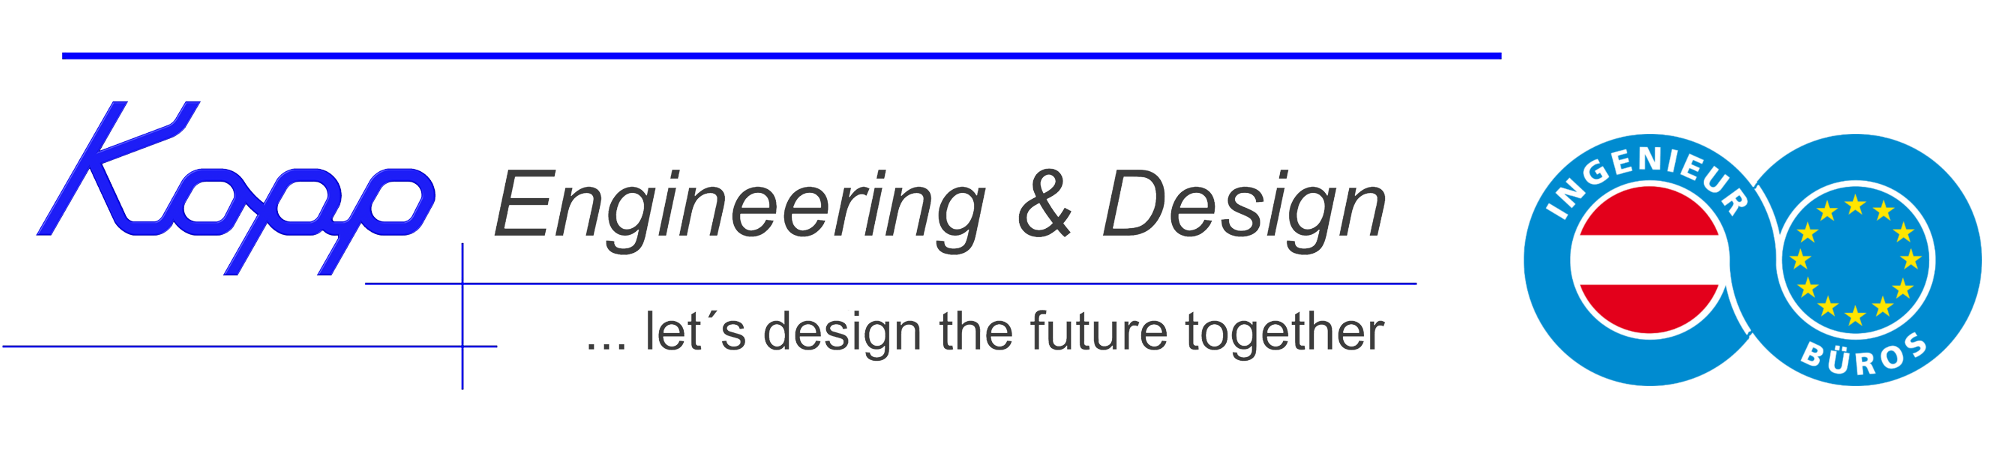 Kopp Engineering & Design ... let´s design the future together